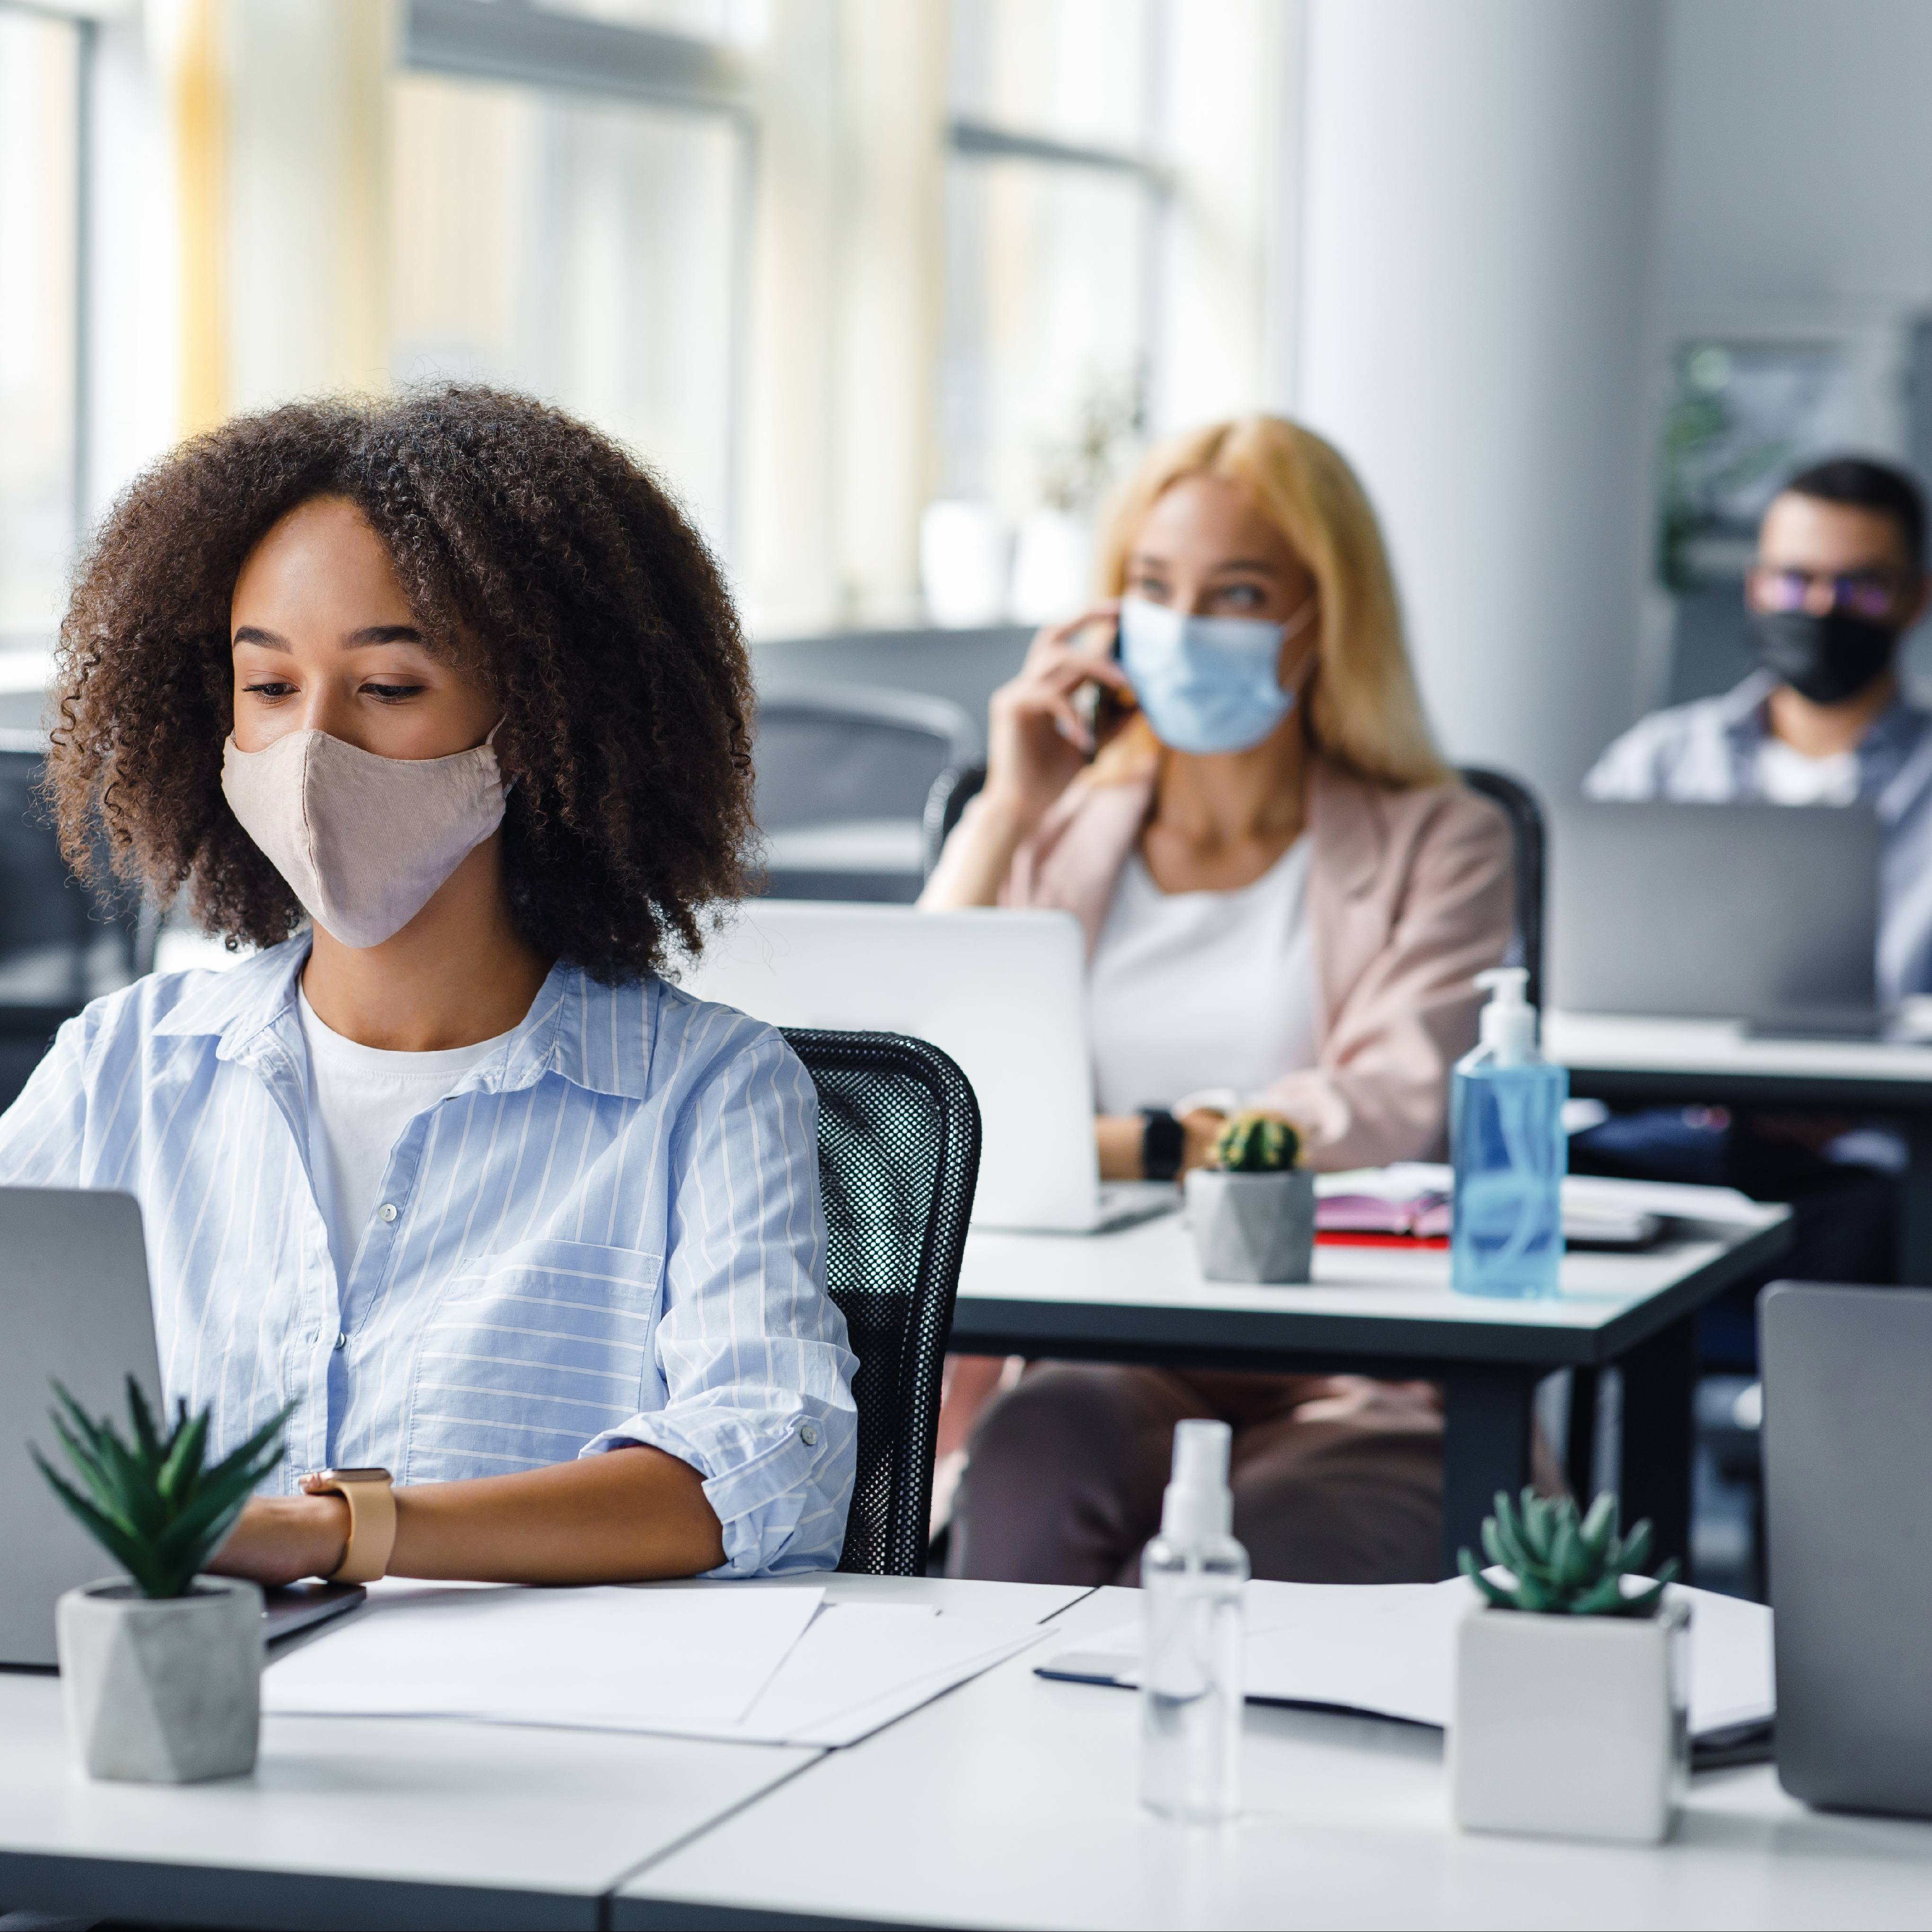 three young diverse students or business people in an office wearing face masks and sitting six feet apart at work desks for COVID-19 social distancing